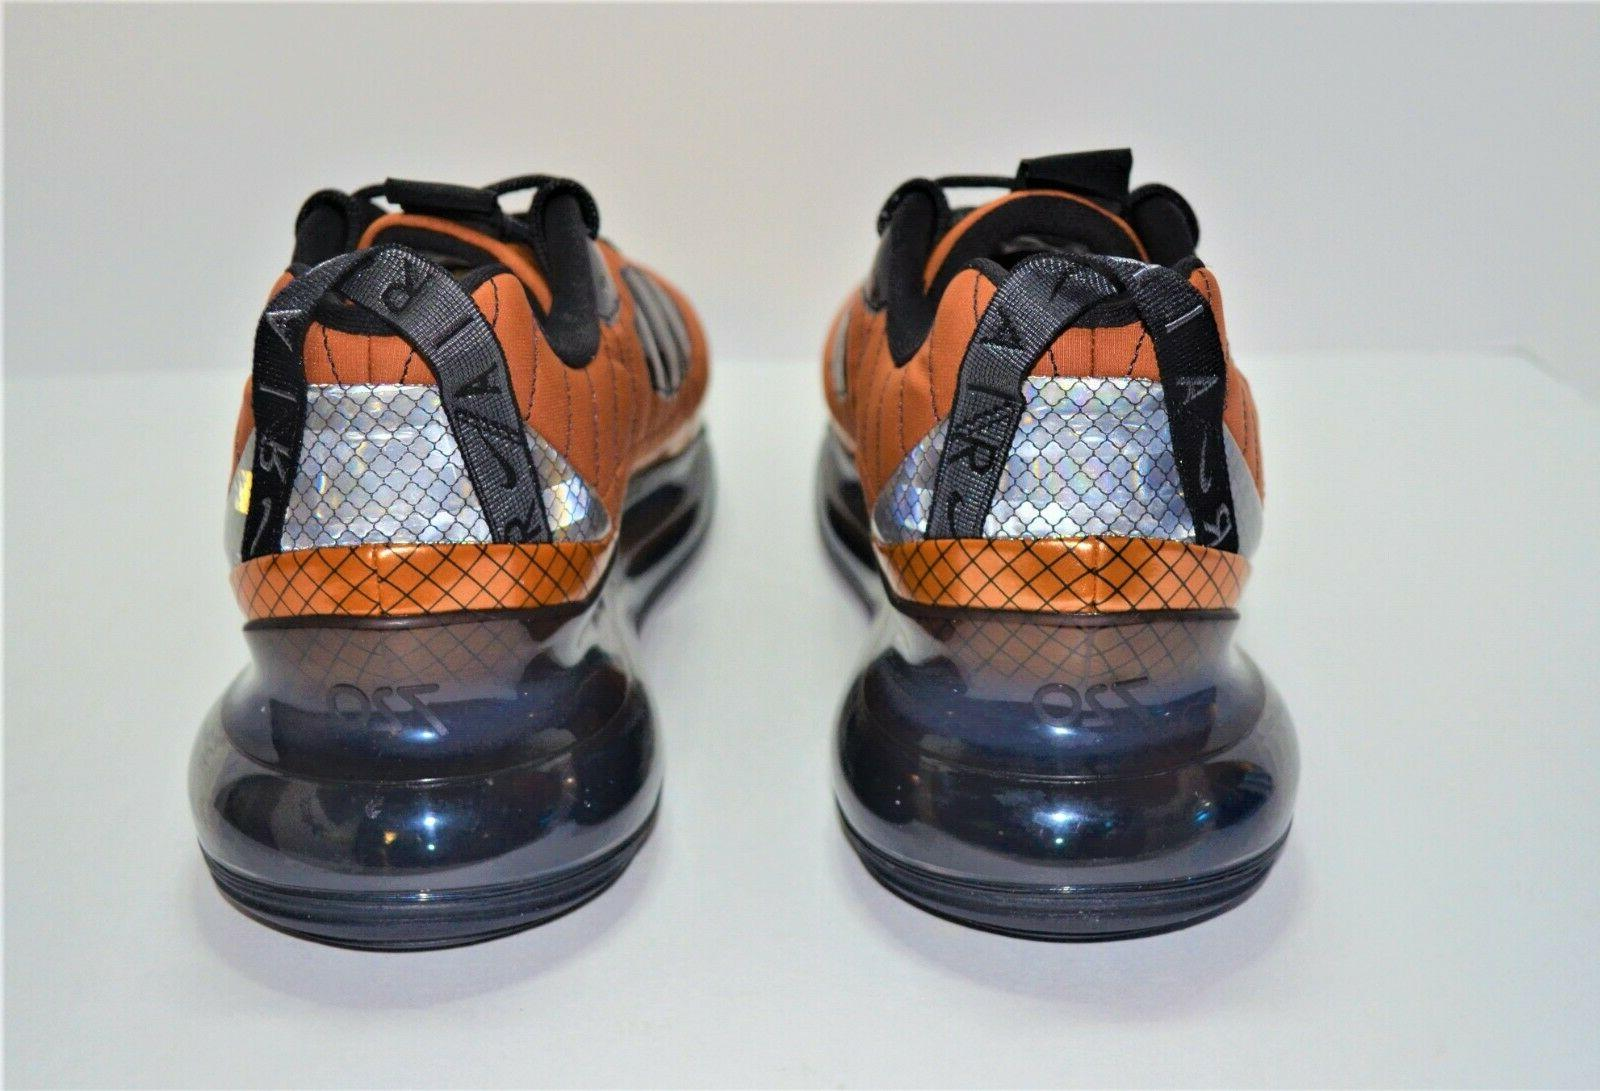 NEW AIR MX-720-818 SHOES SIZE 12 BV5841-800